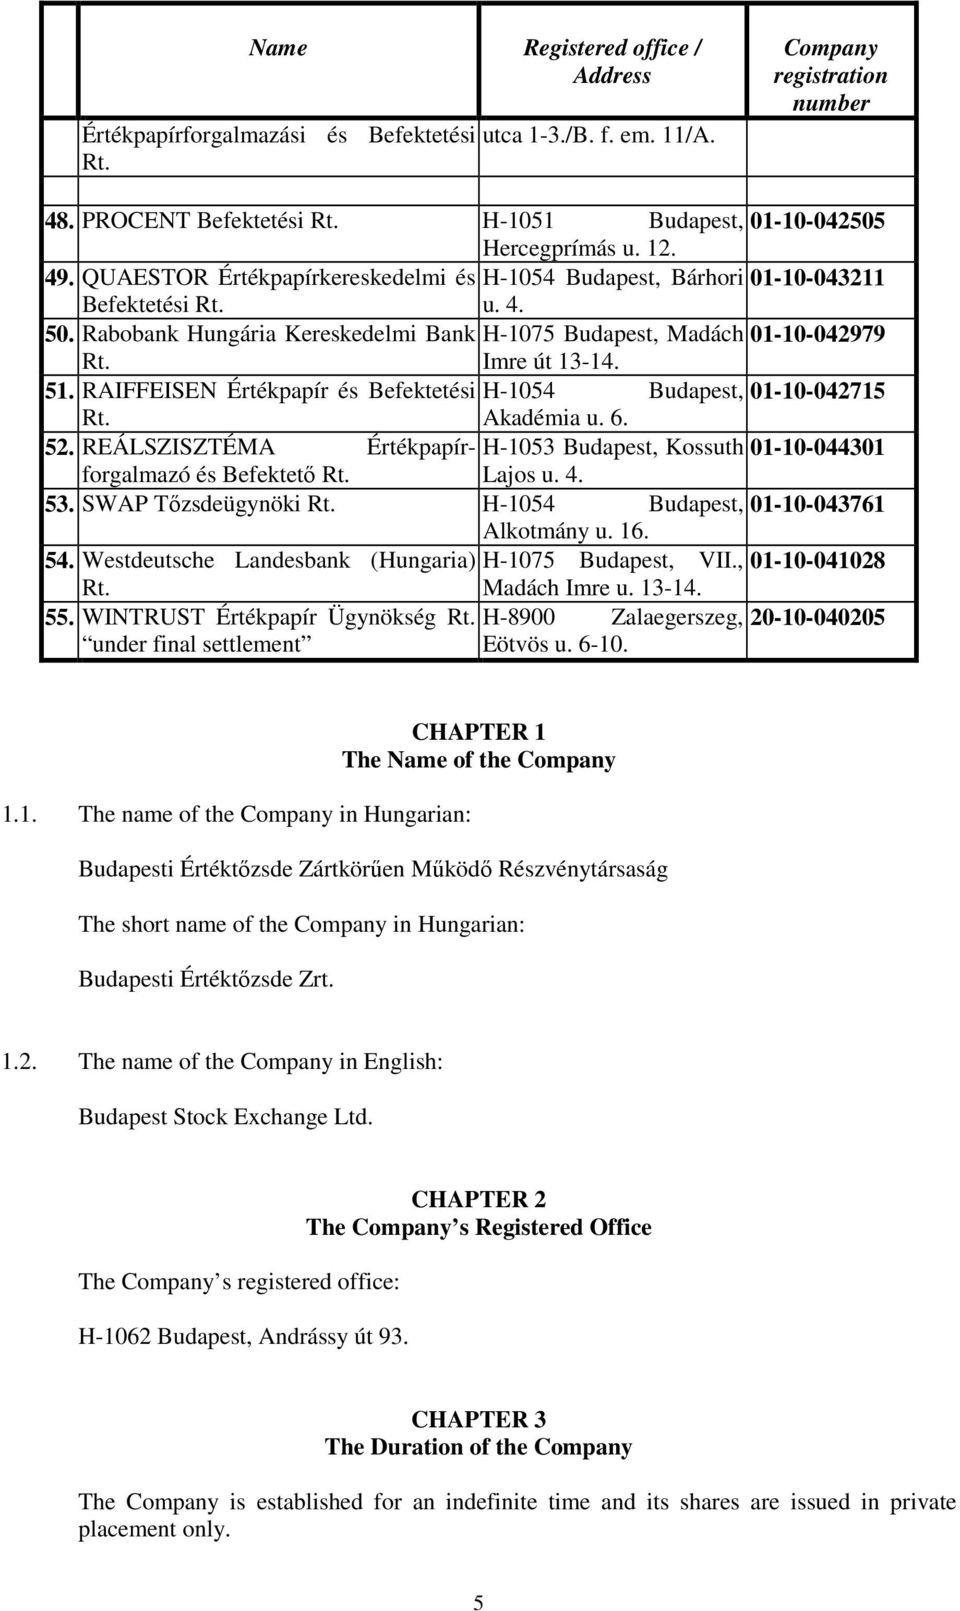 ARTICLES OF ASSOCIATION OF THE BUDAPEST STOCK EXCHANGE LTD